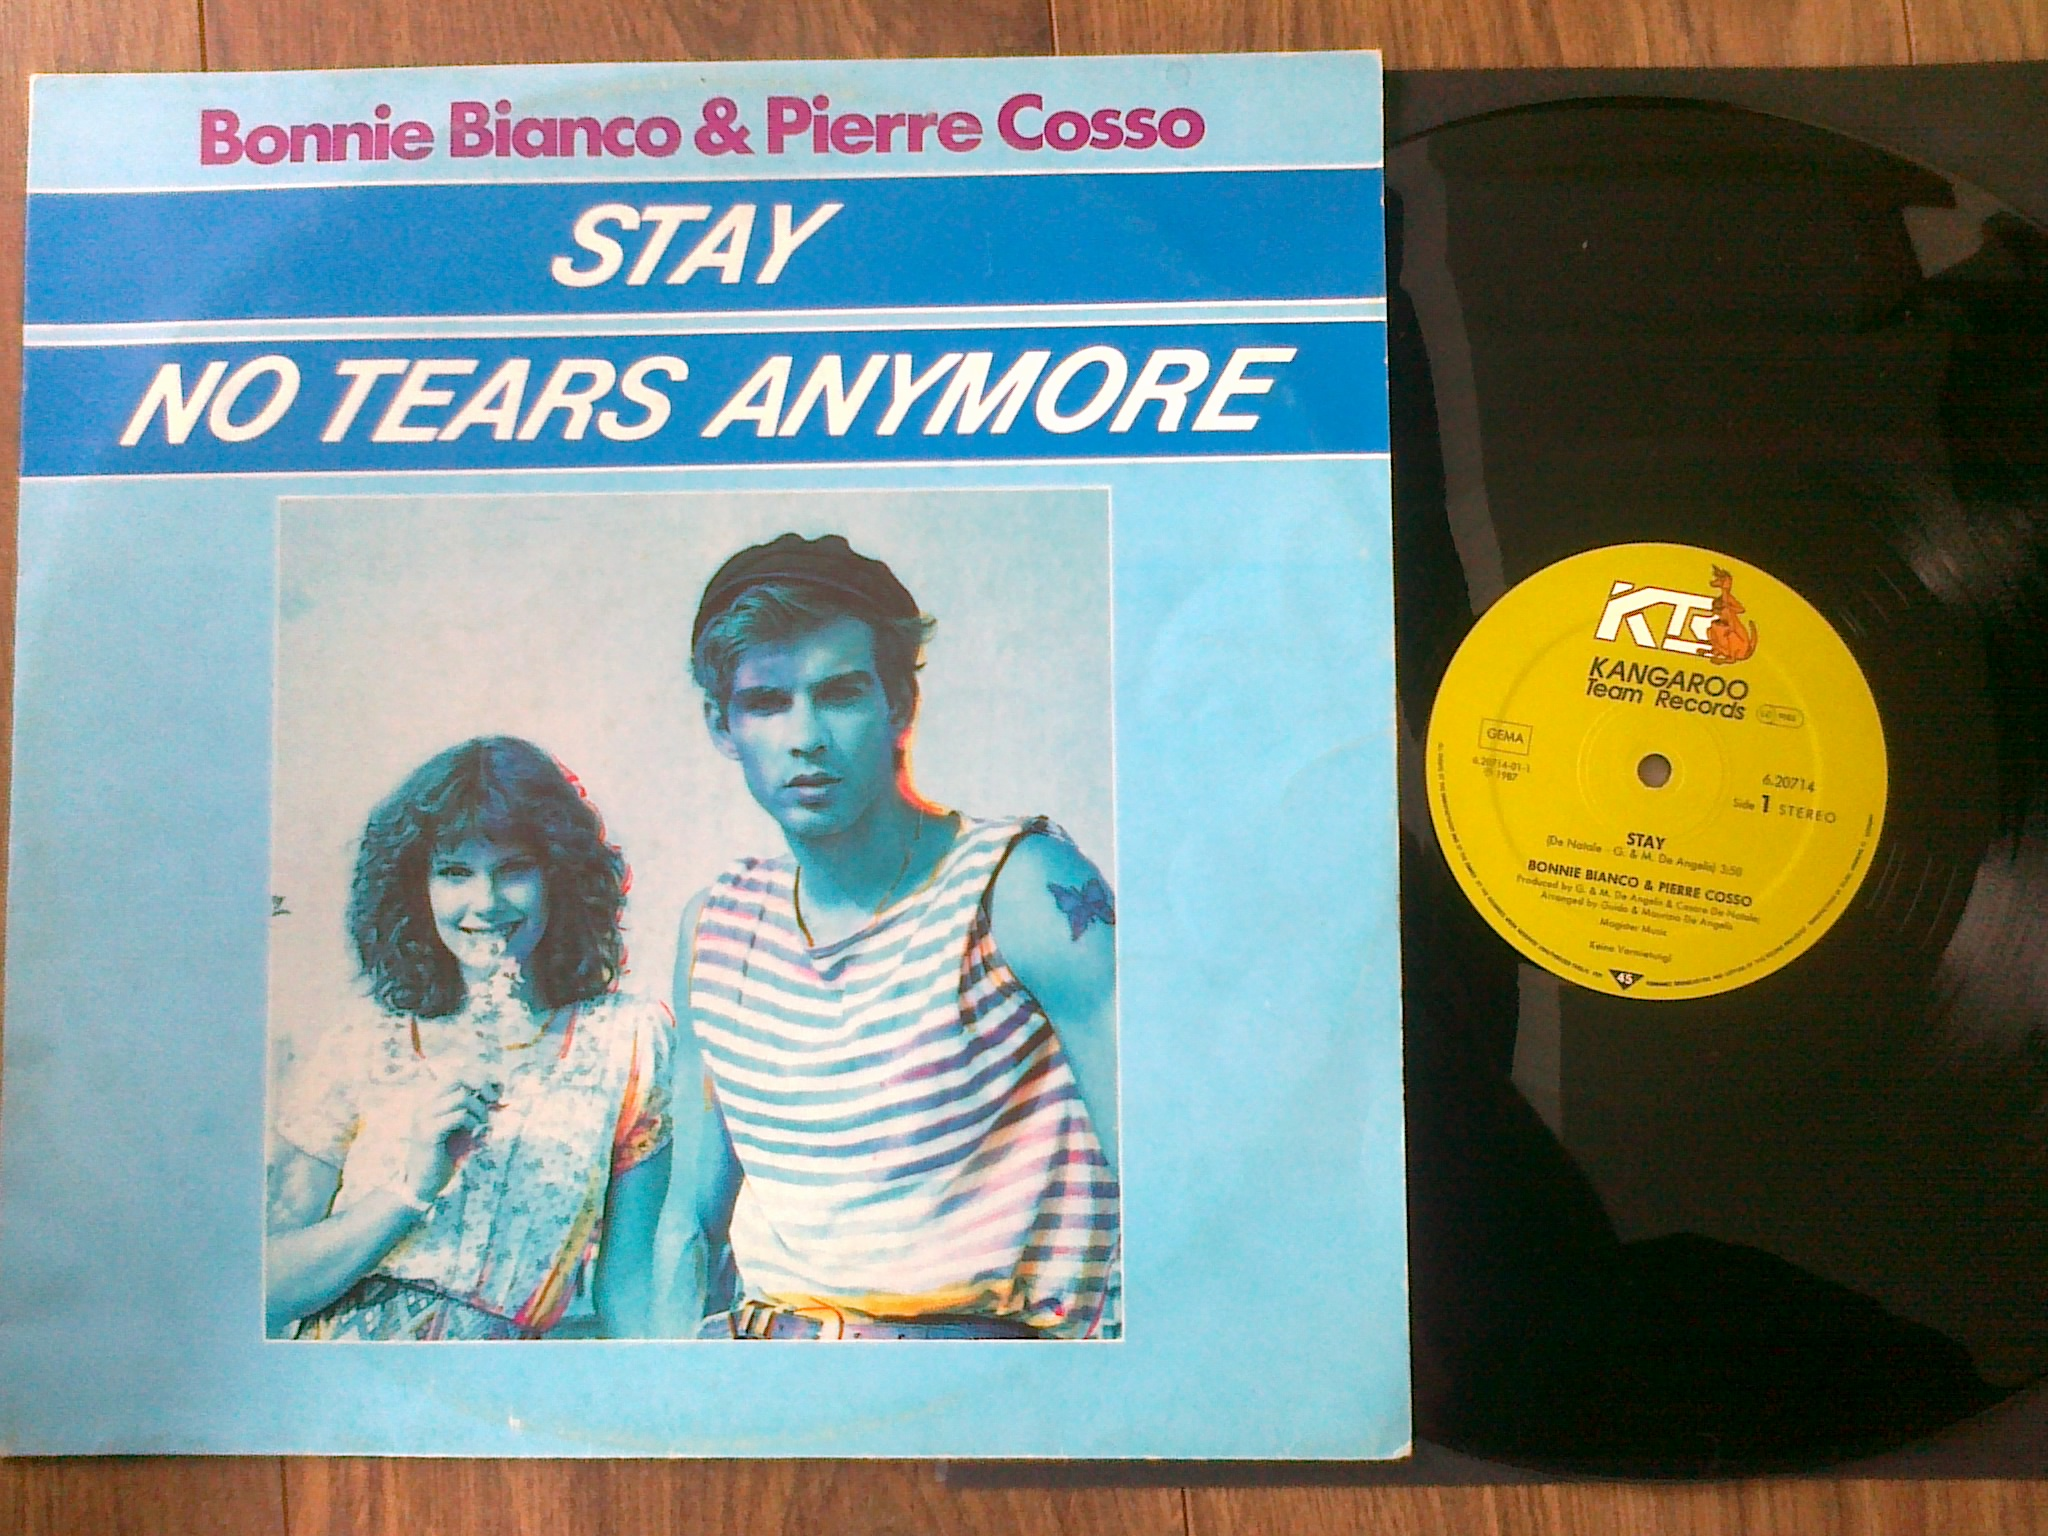 Bonnie Bianco and Pierre Cosso - Stay